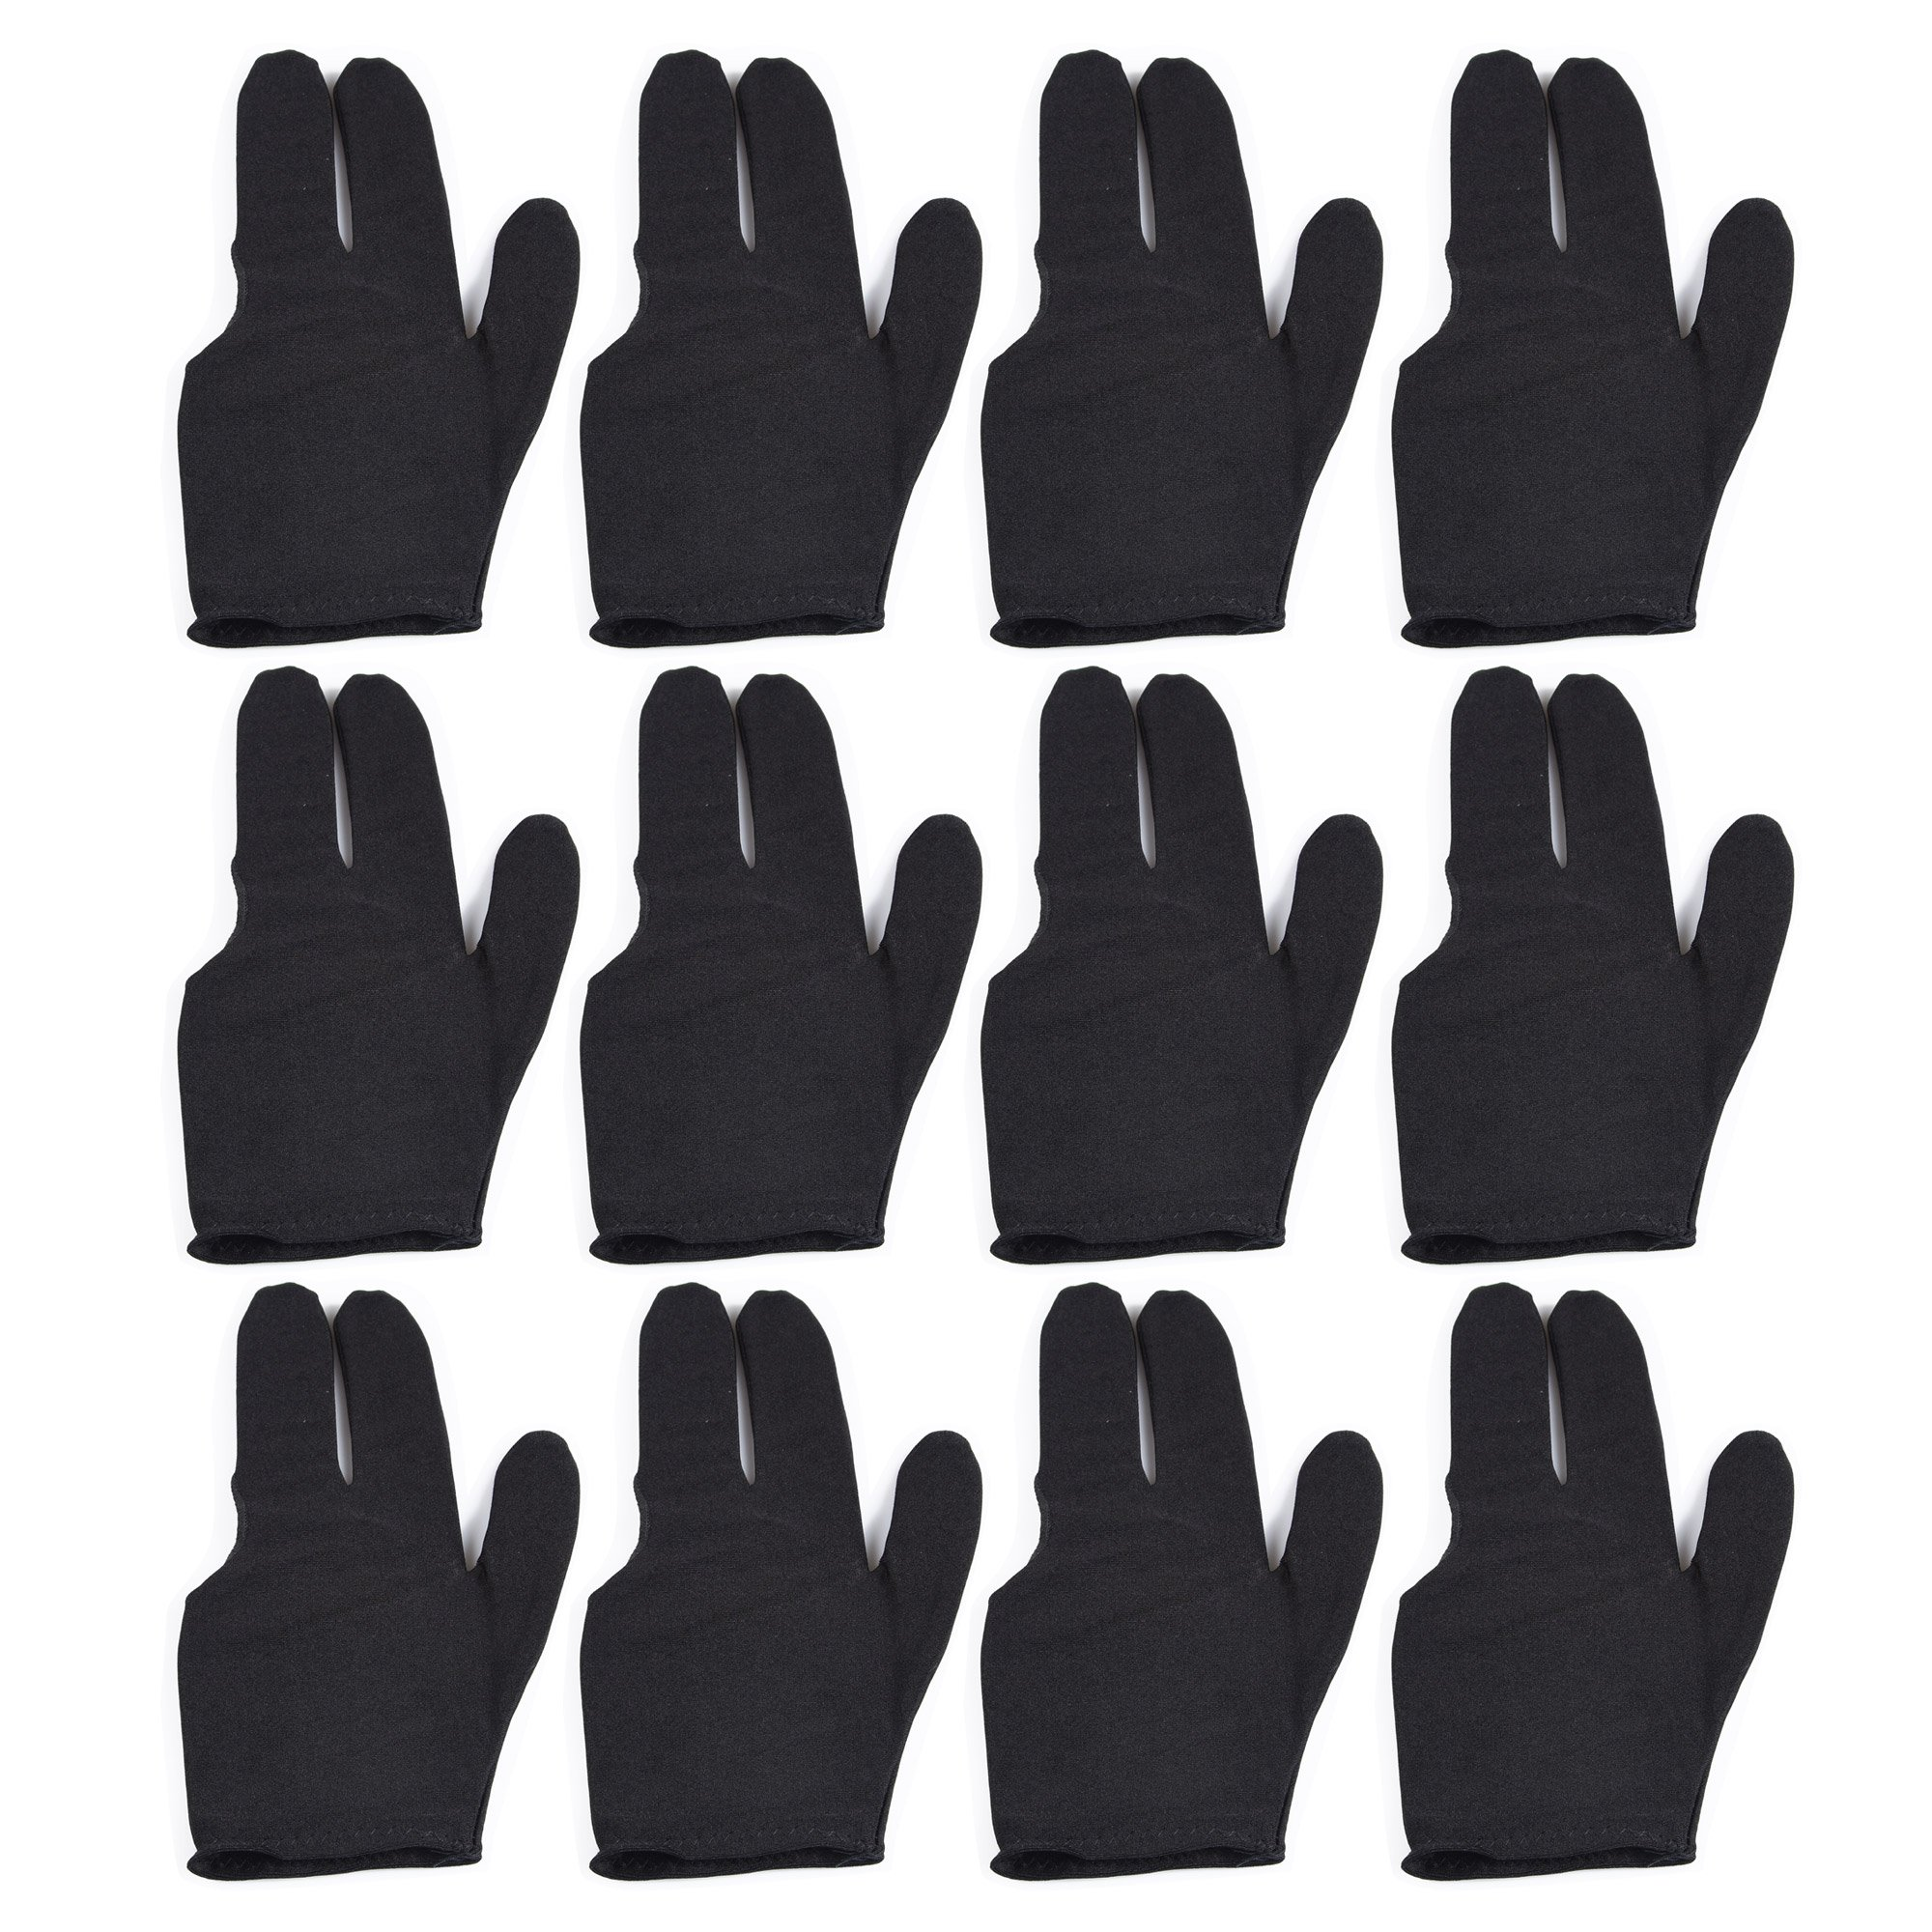 T&R sports Billiard Glove 3 Fingers Show Pool Cue Gloves, Pack of 12 Pieces, Black